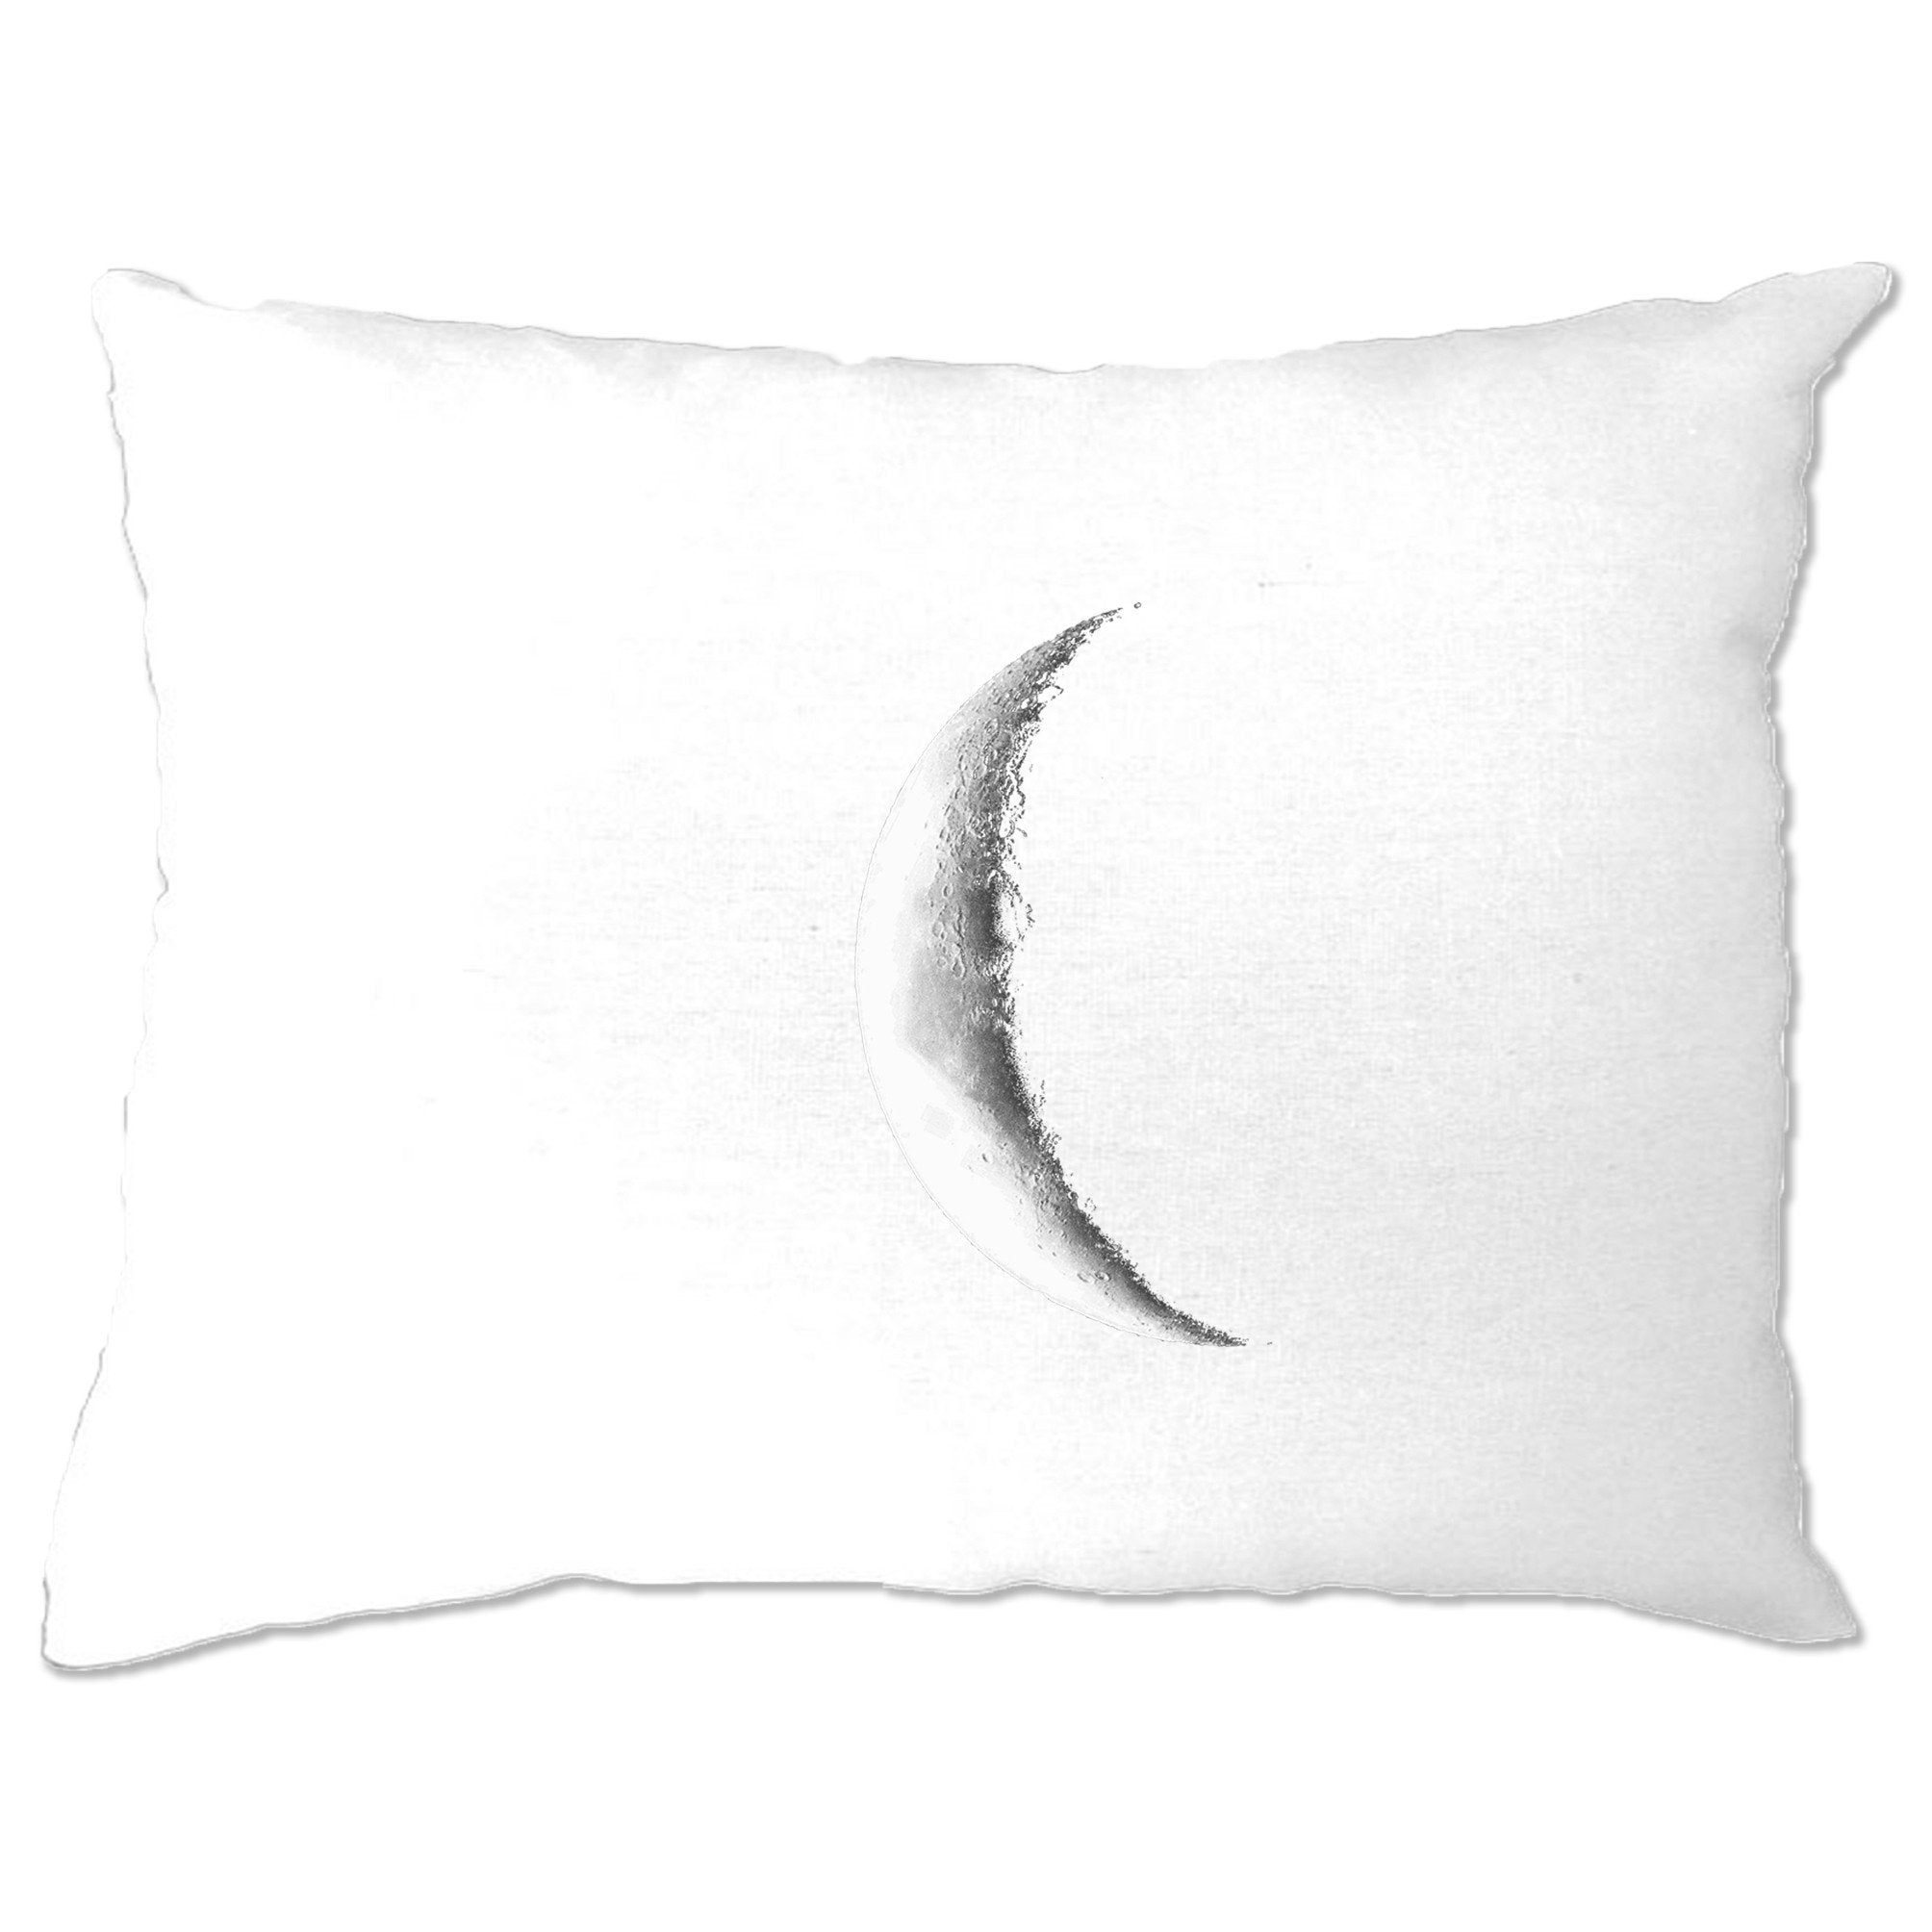 Space Pillow Case Crescent Half Moon Astronomy